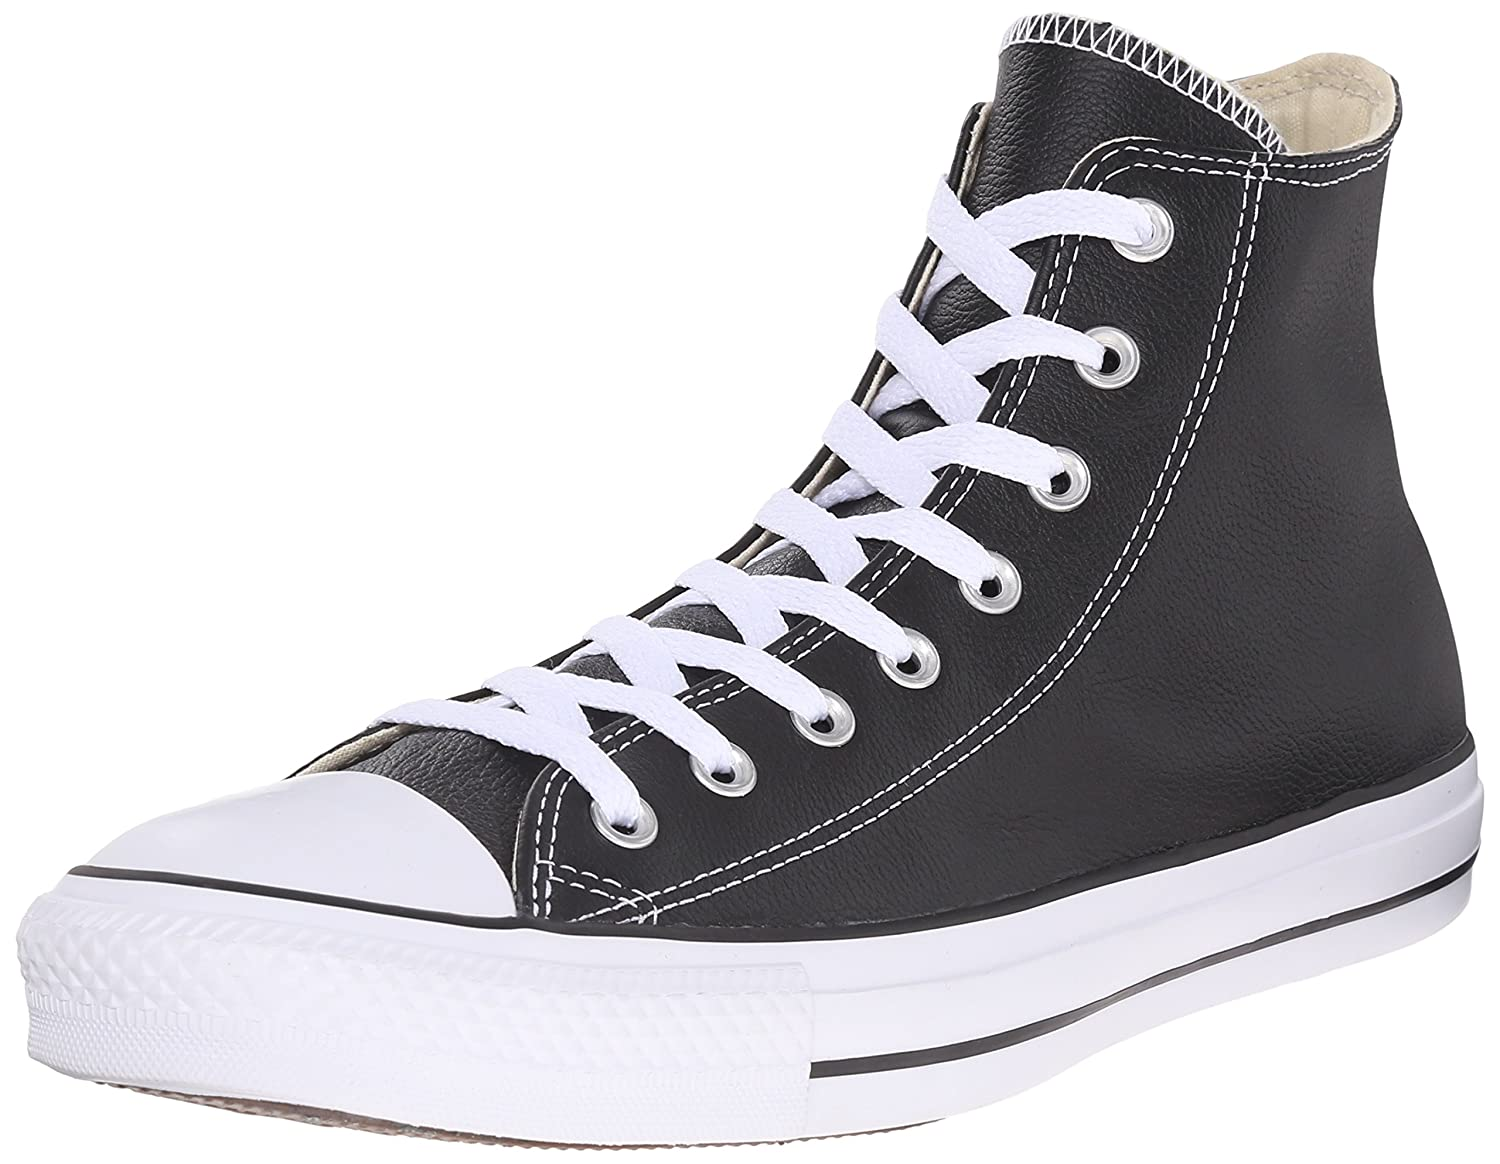 Converse Chuck Taylor All Star Leather High Top Sneaker B005BAVIKU Men's 10.5 Medium|Black Leather